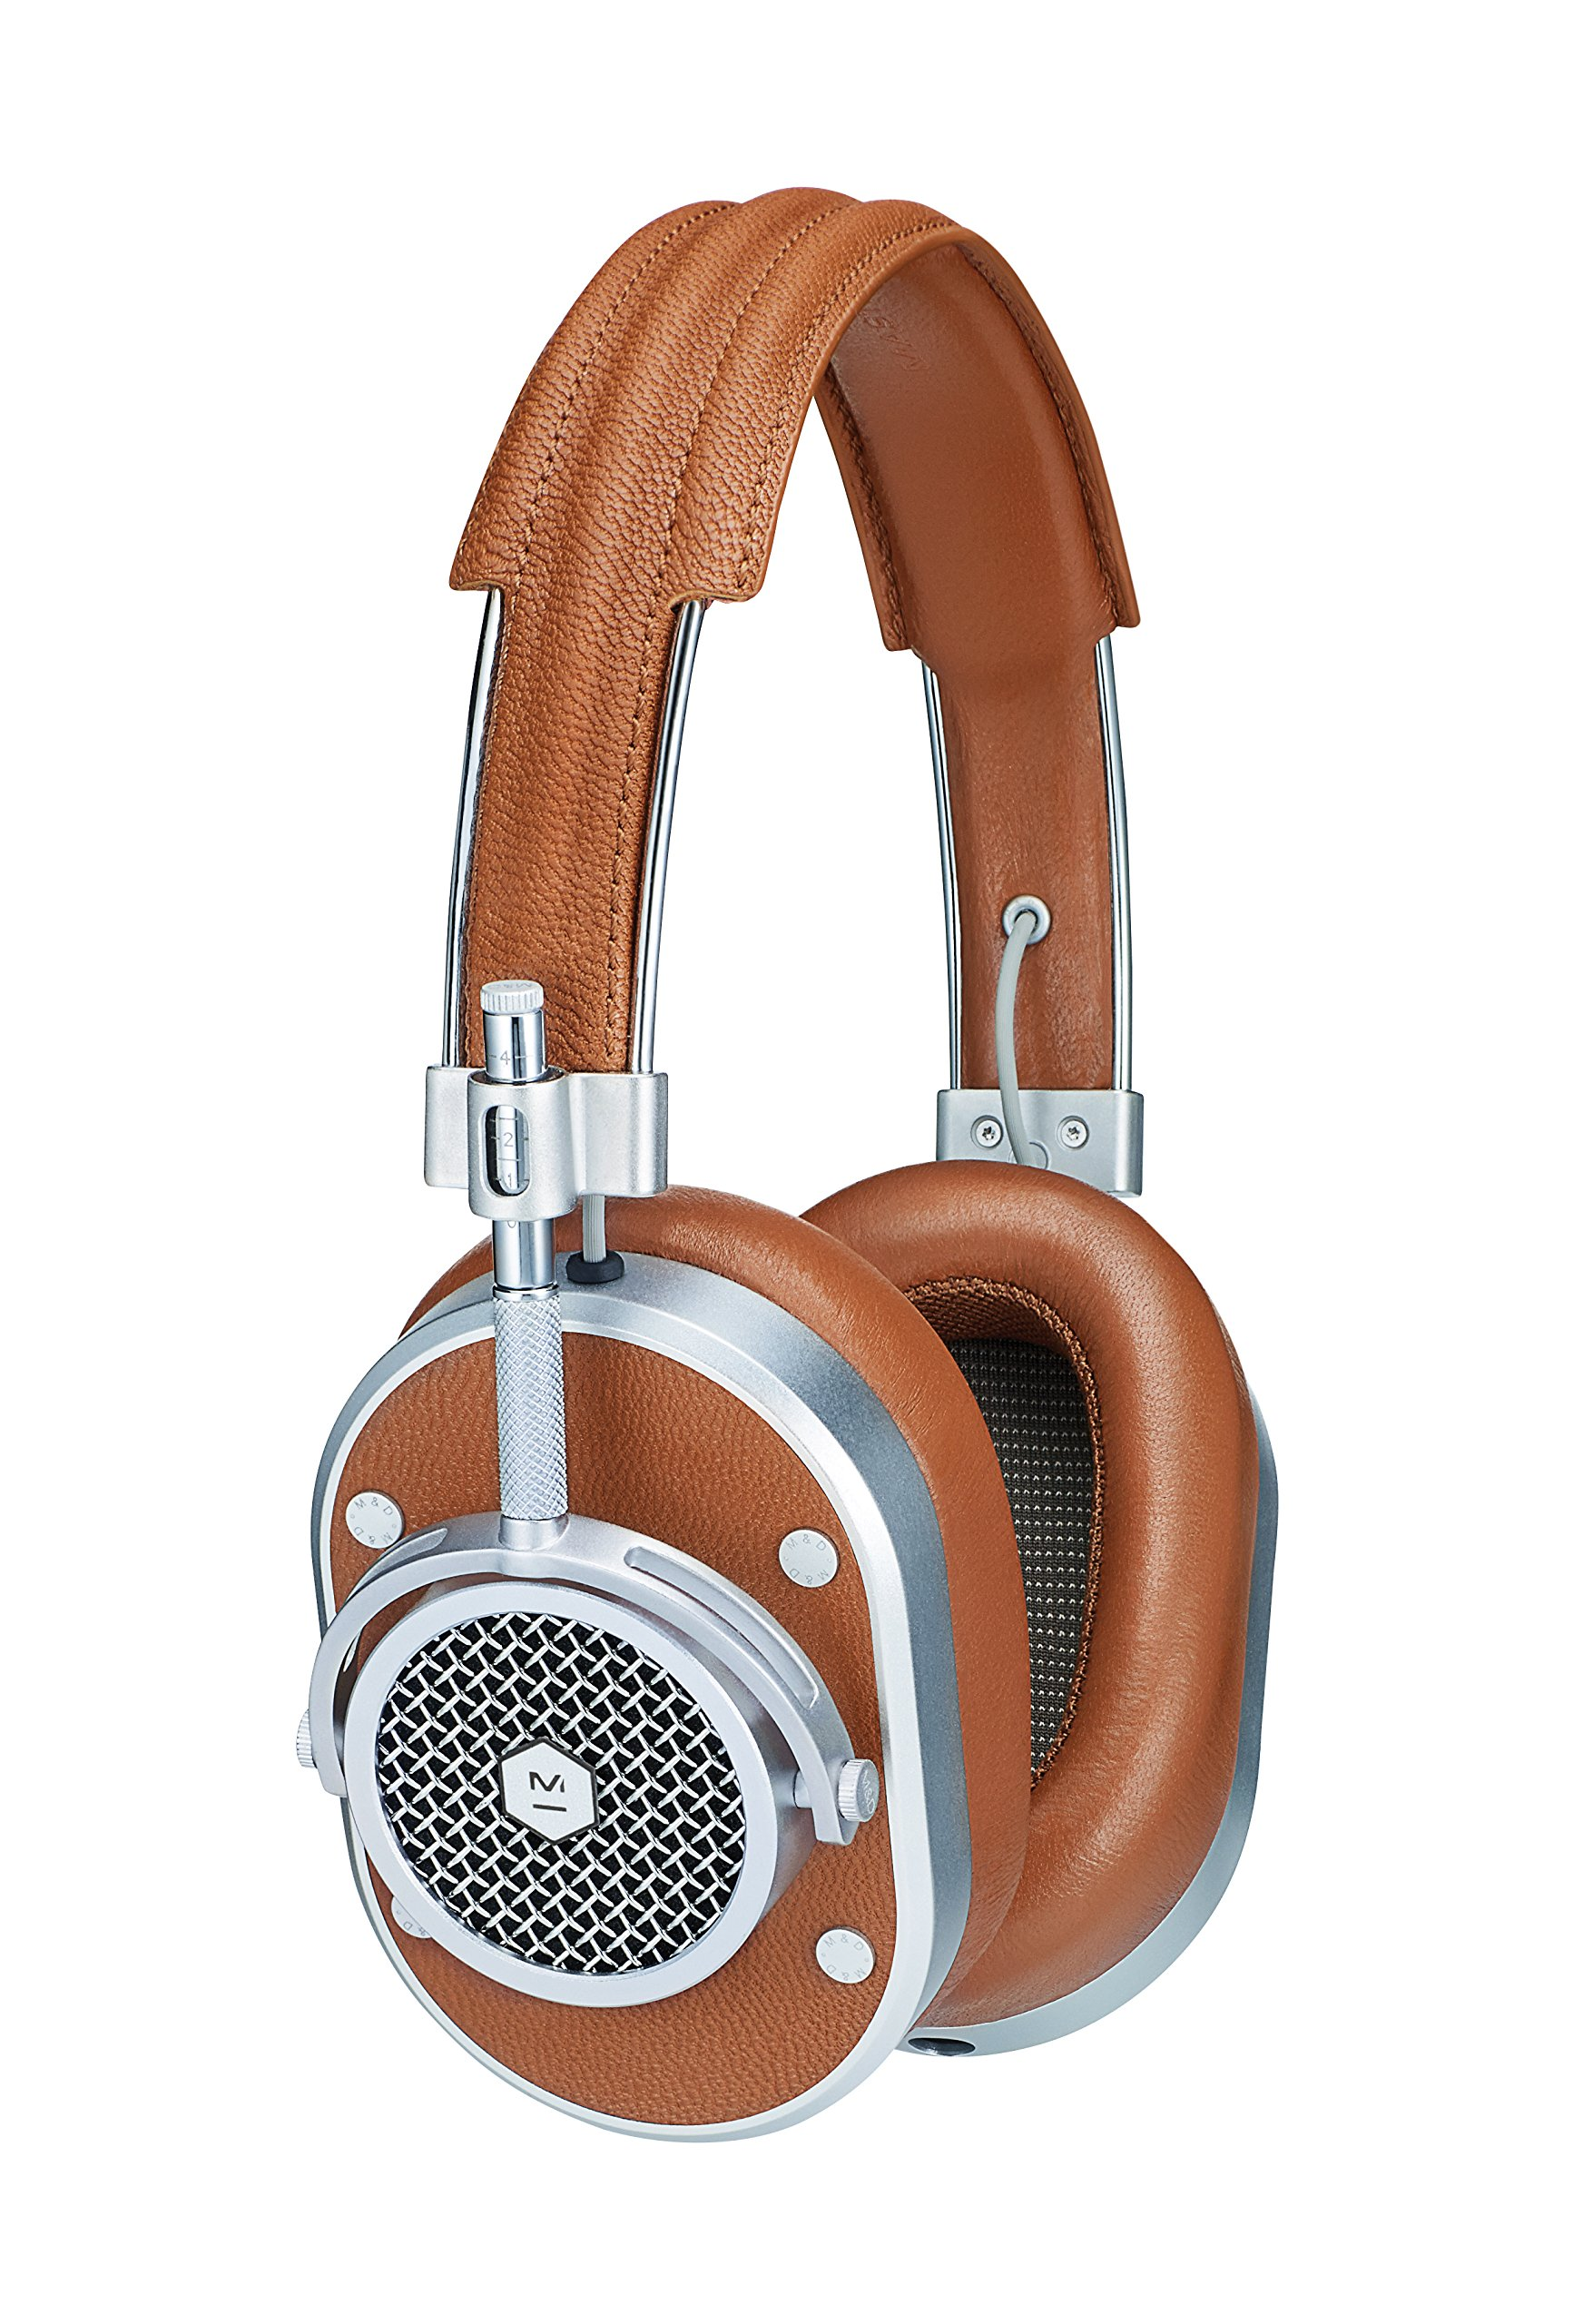 Master & Dynamic MH40 Over Ear Headphone - Brown by Master & Dynamic